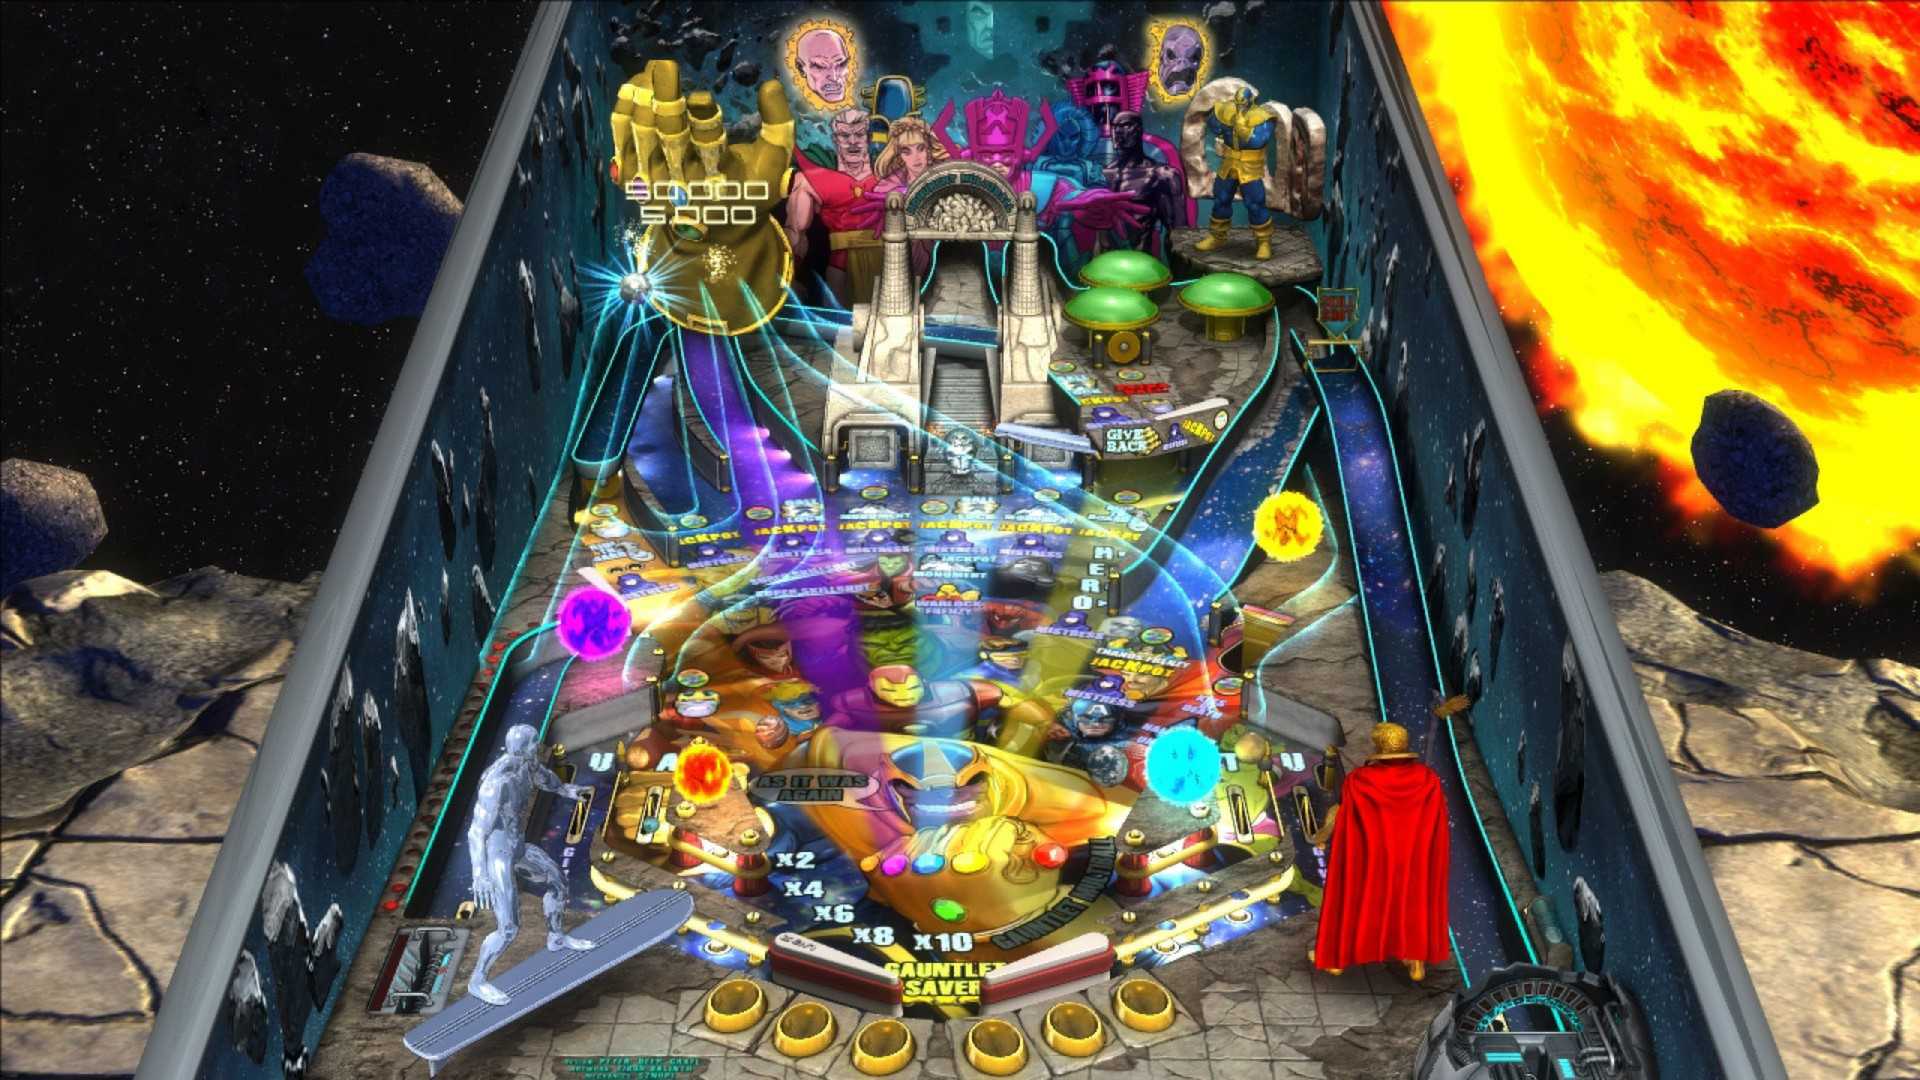 It plays much like real pinball. You can even nudge the table to influence the path of the ball.